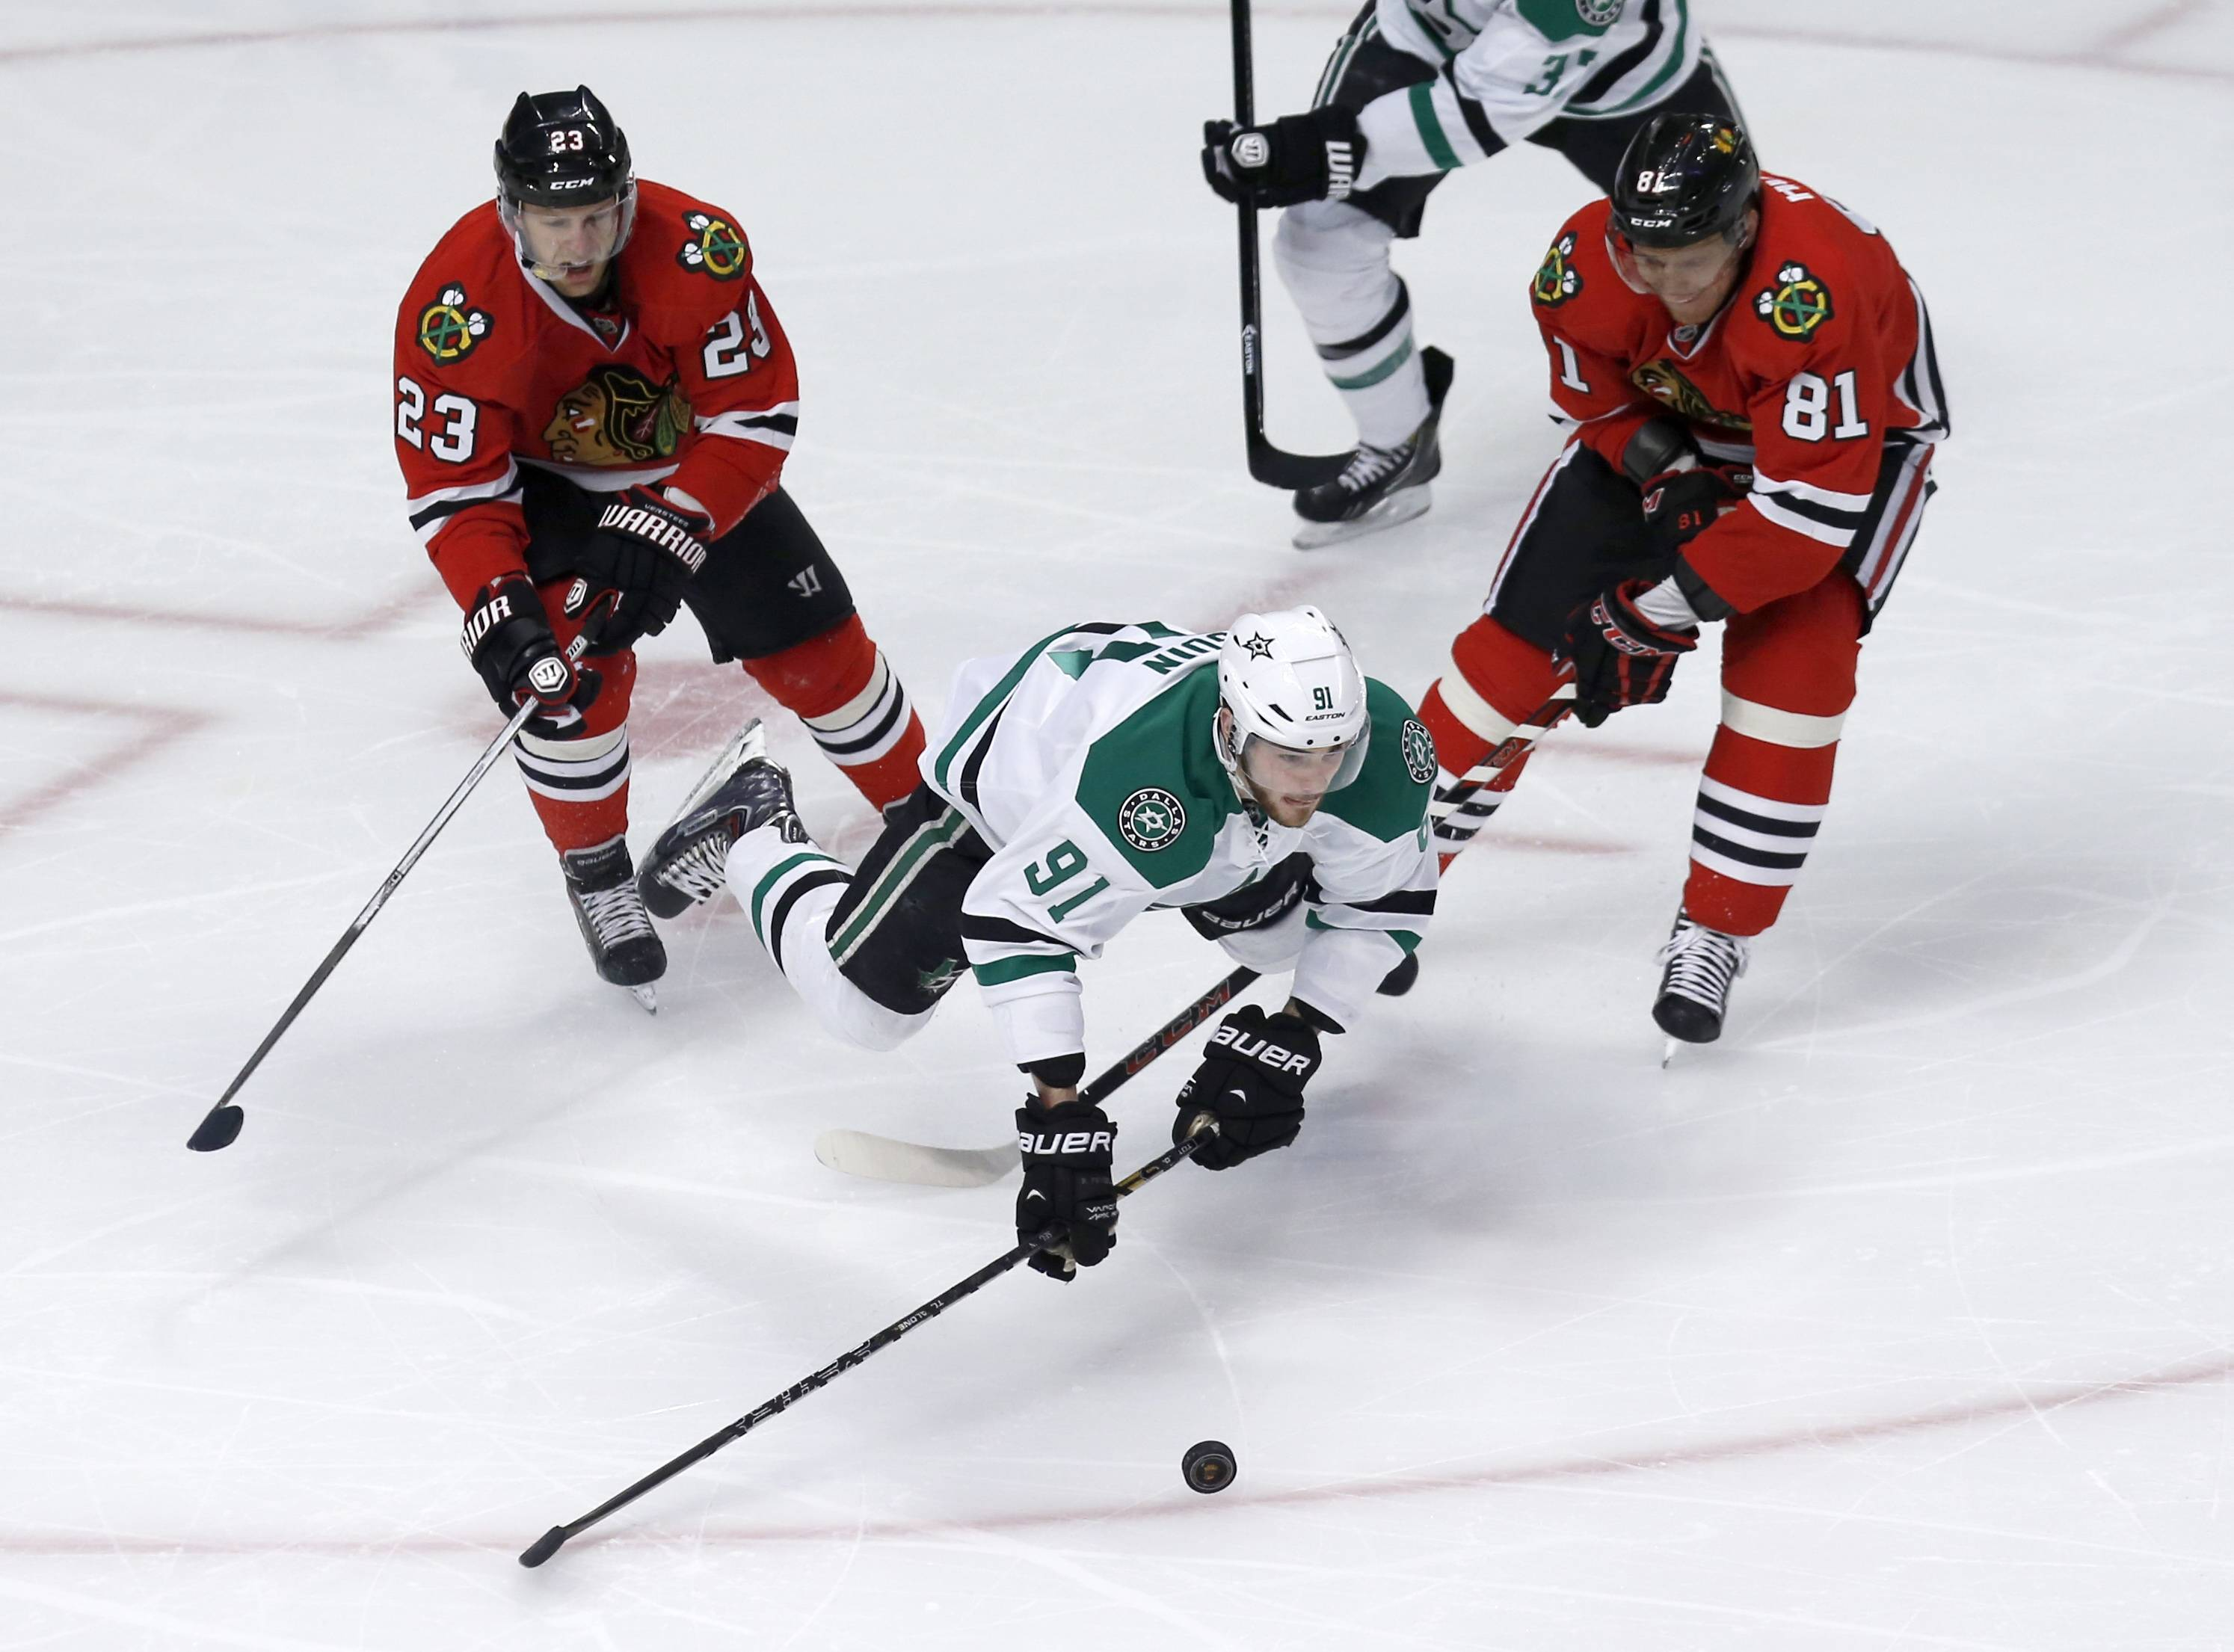 Dallas Stars center Tyler Seguin (91) falls to the ice between Chicago Blackhawks right wing Kris Versteeg (23) and Marian Hossa (81) during Tuesday night's game at the United Center.